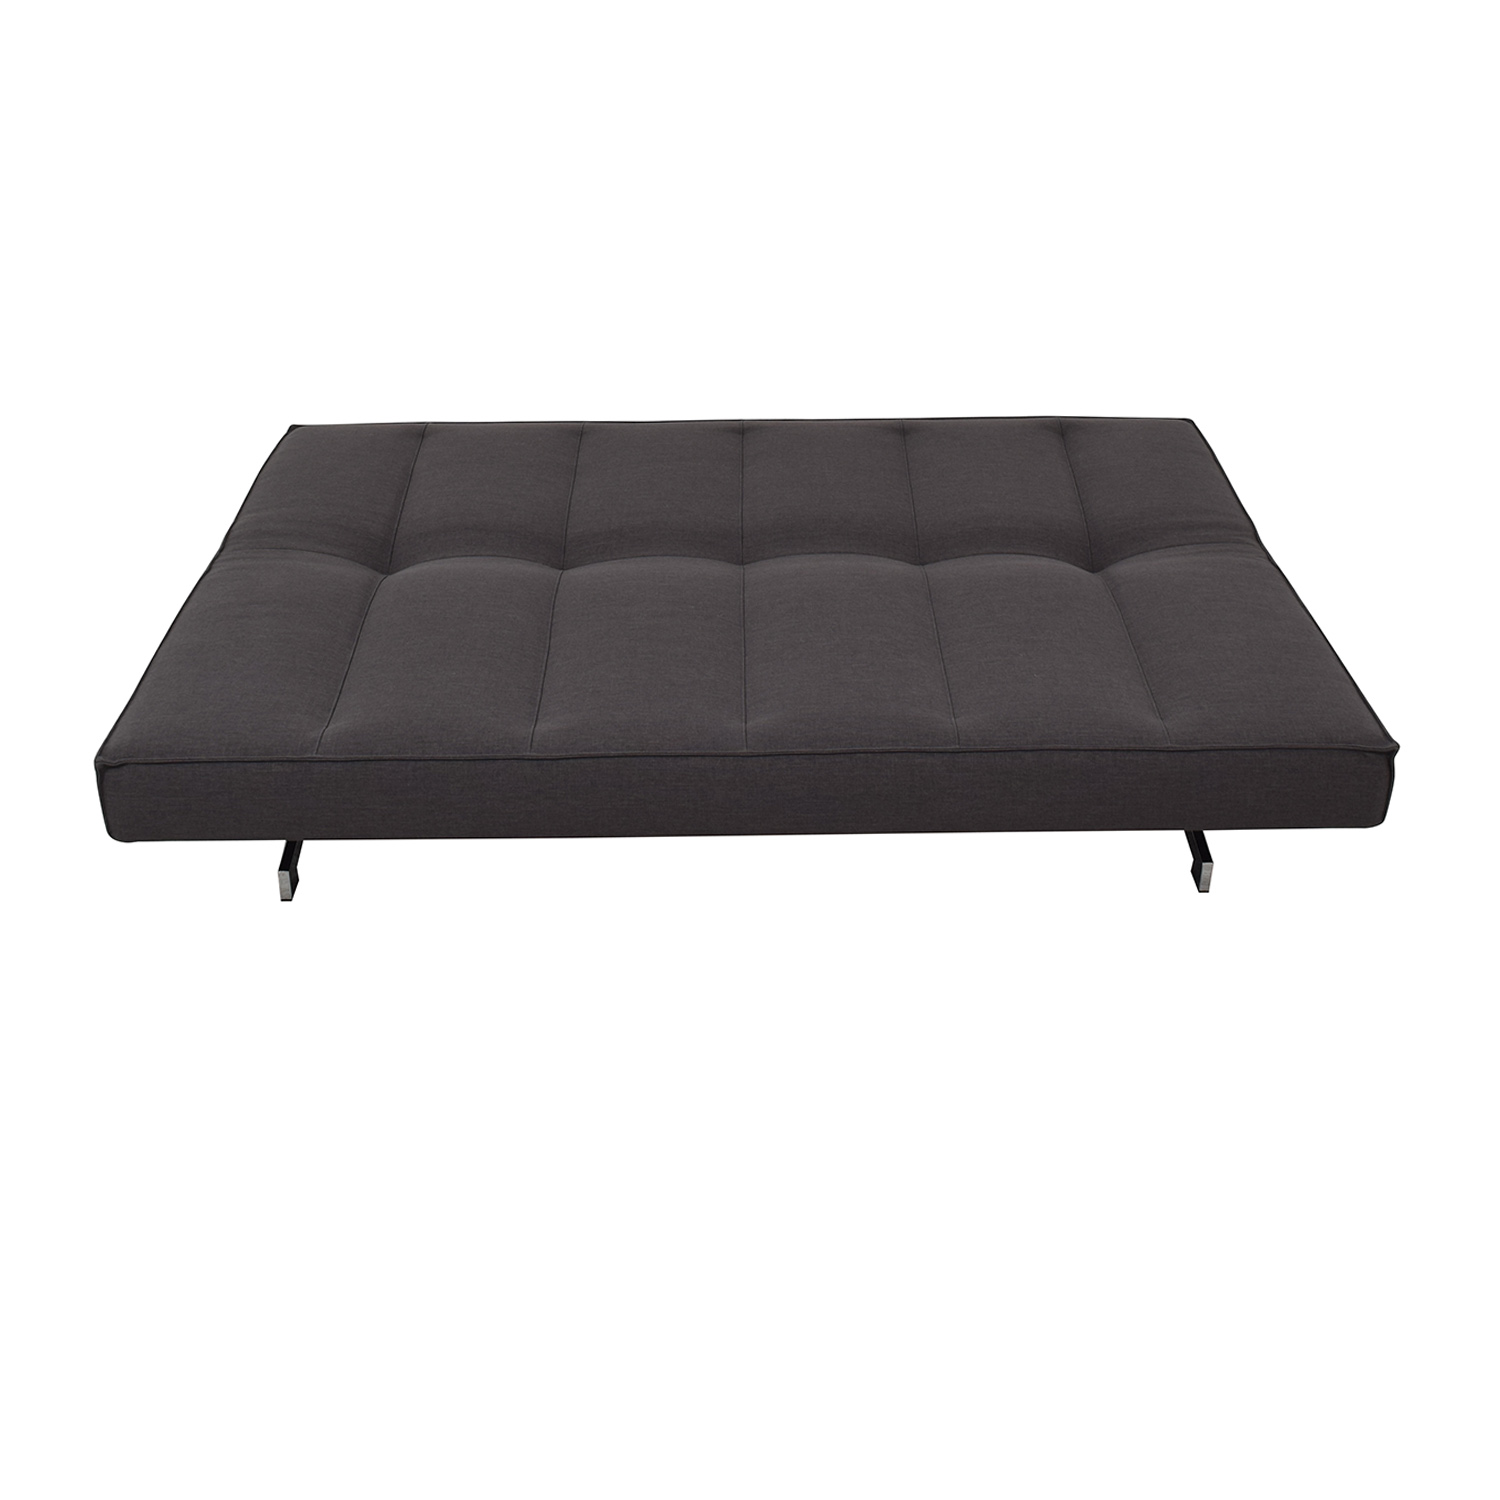 CB2 CB2 Flex Gravel Sleeper Sofa nyc